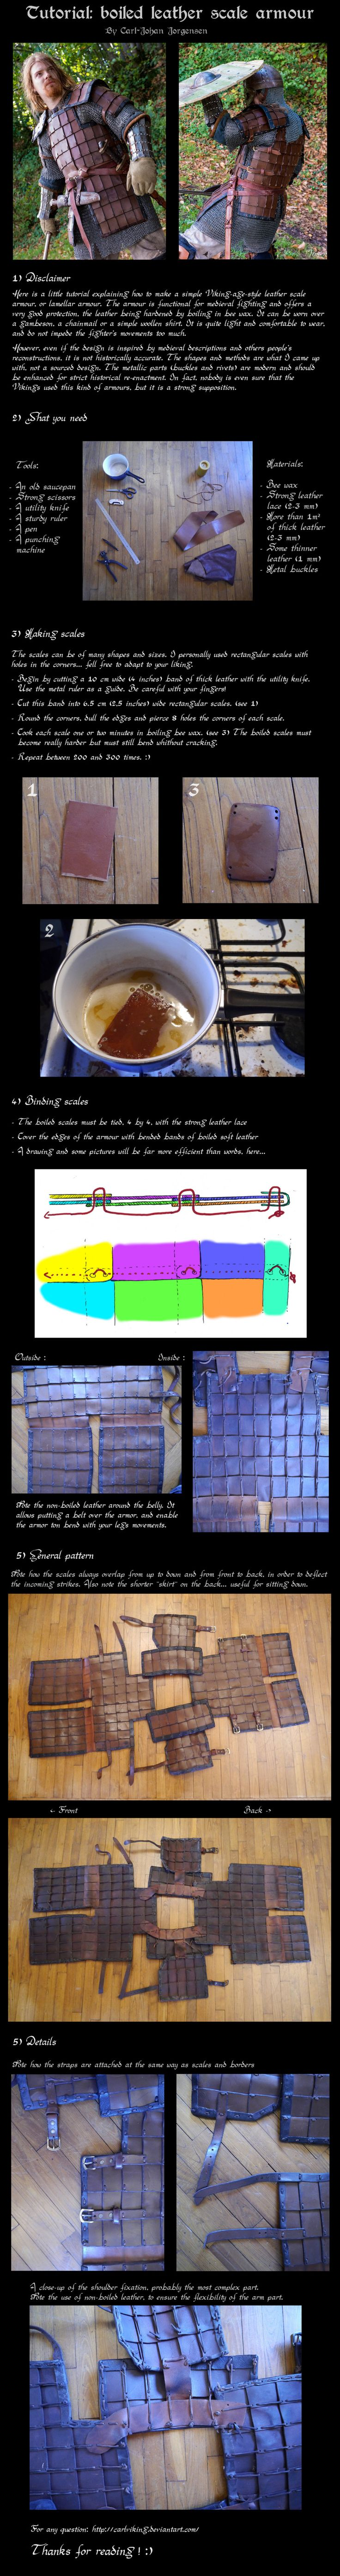 Tutorial: leather armour by carlviking on DeviantArt